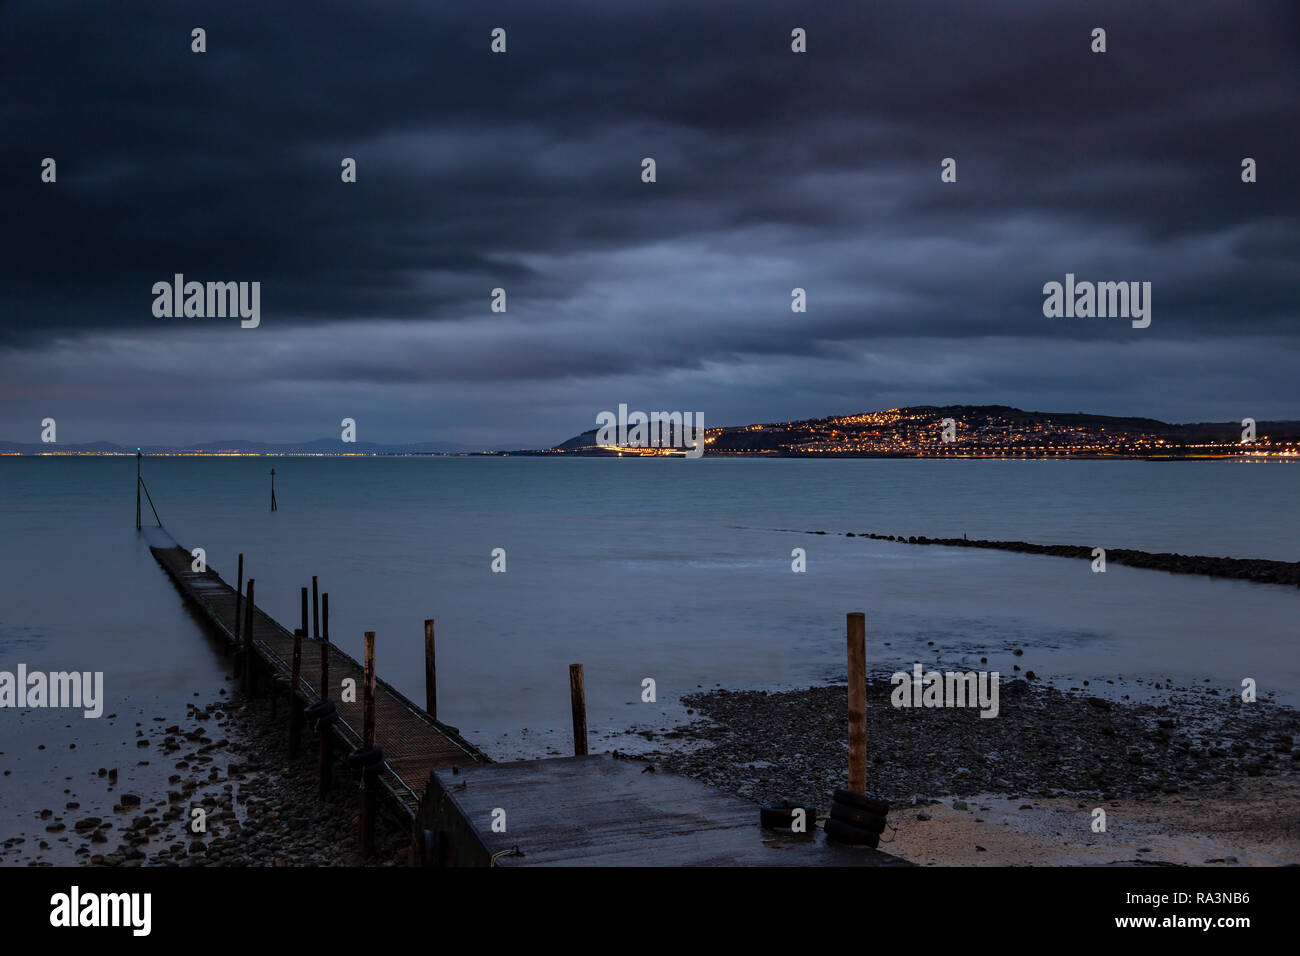 Jetty at Rhos-on-Sea at night on the North Wales coast Stock Photo